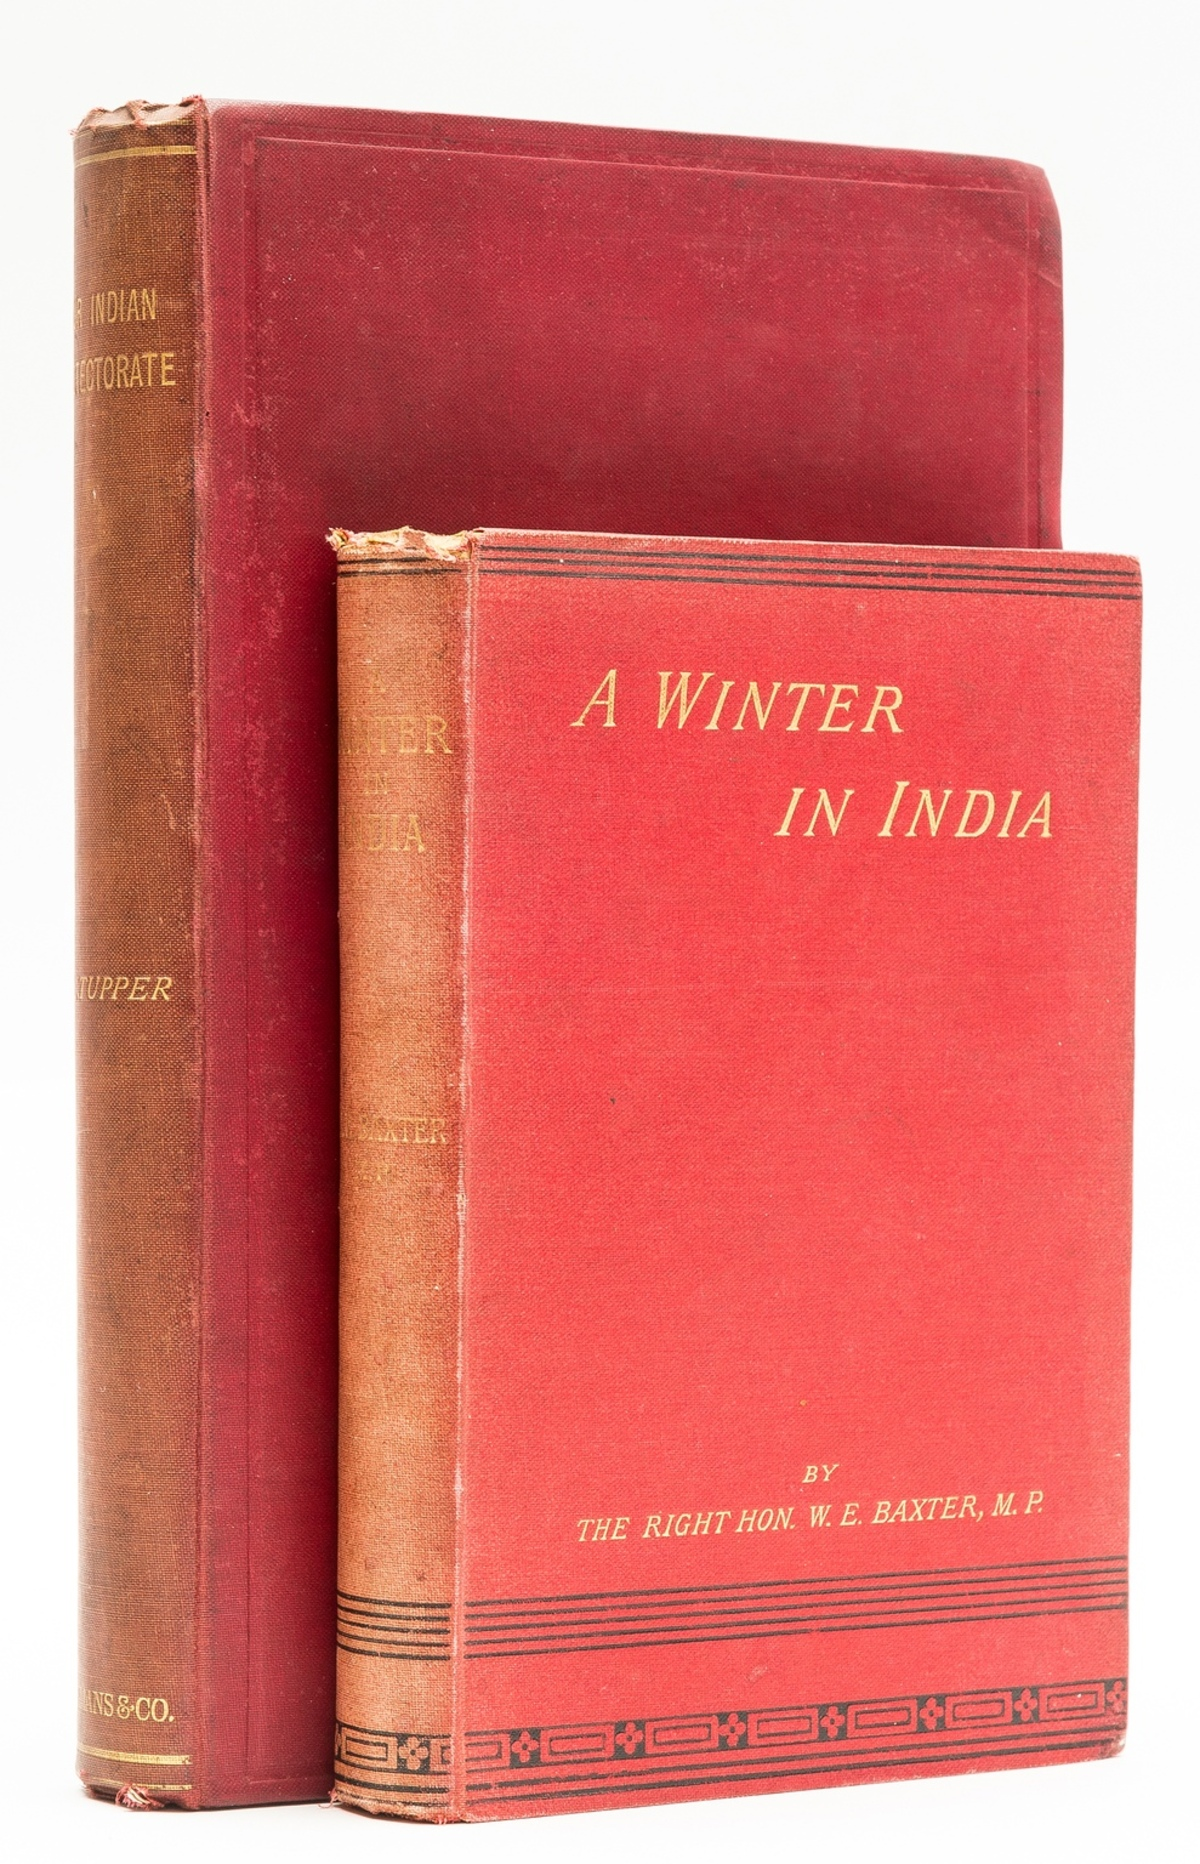 India.- Tupper (Charles Lewis) Our Indian Protectorate, first edition, presentation copy, 1893.